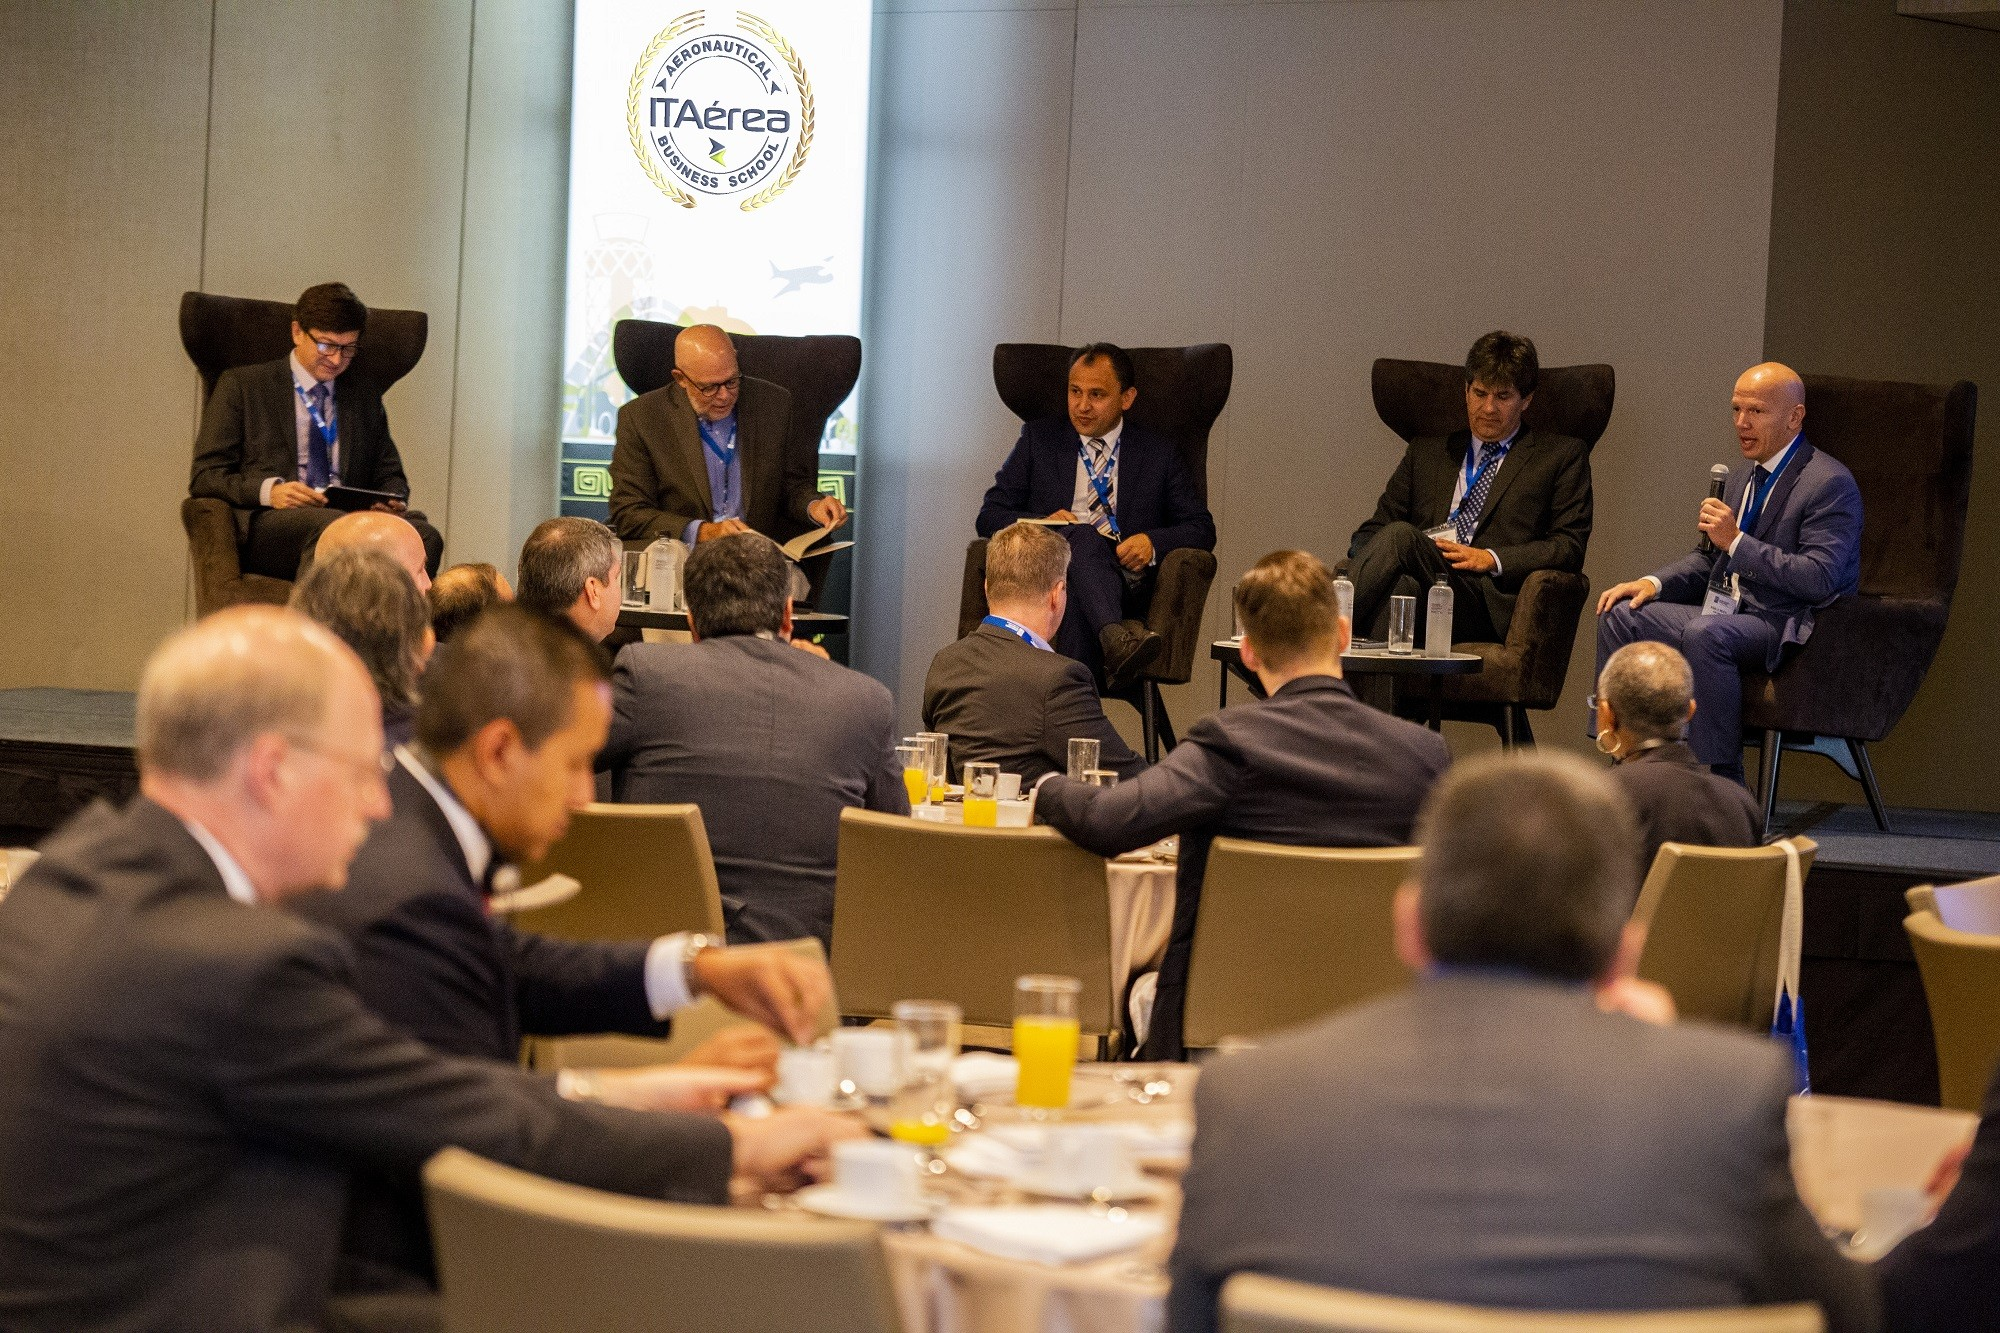 WBPs Breakfast and CEOs Panel ITAerea00402 - IV Sector Meeting: Airports